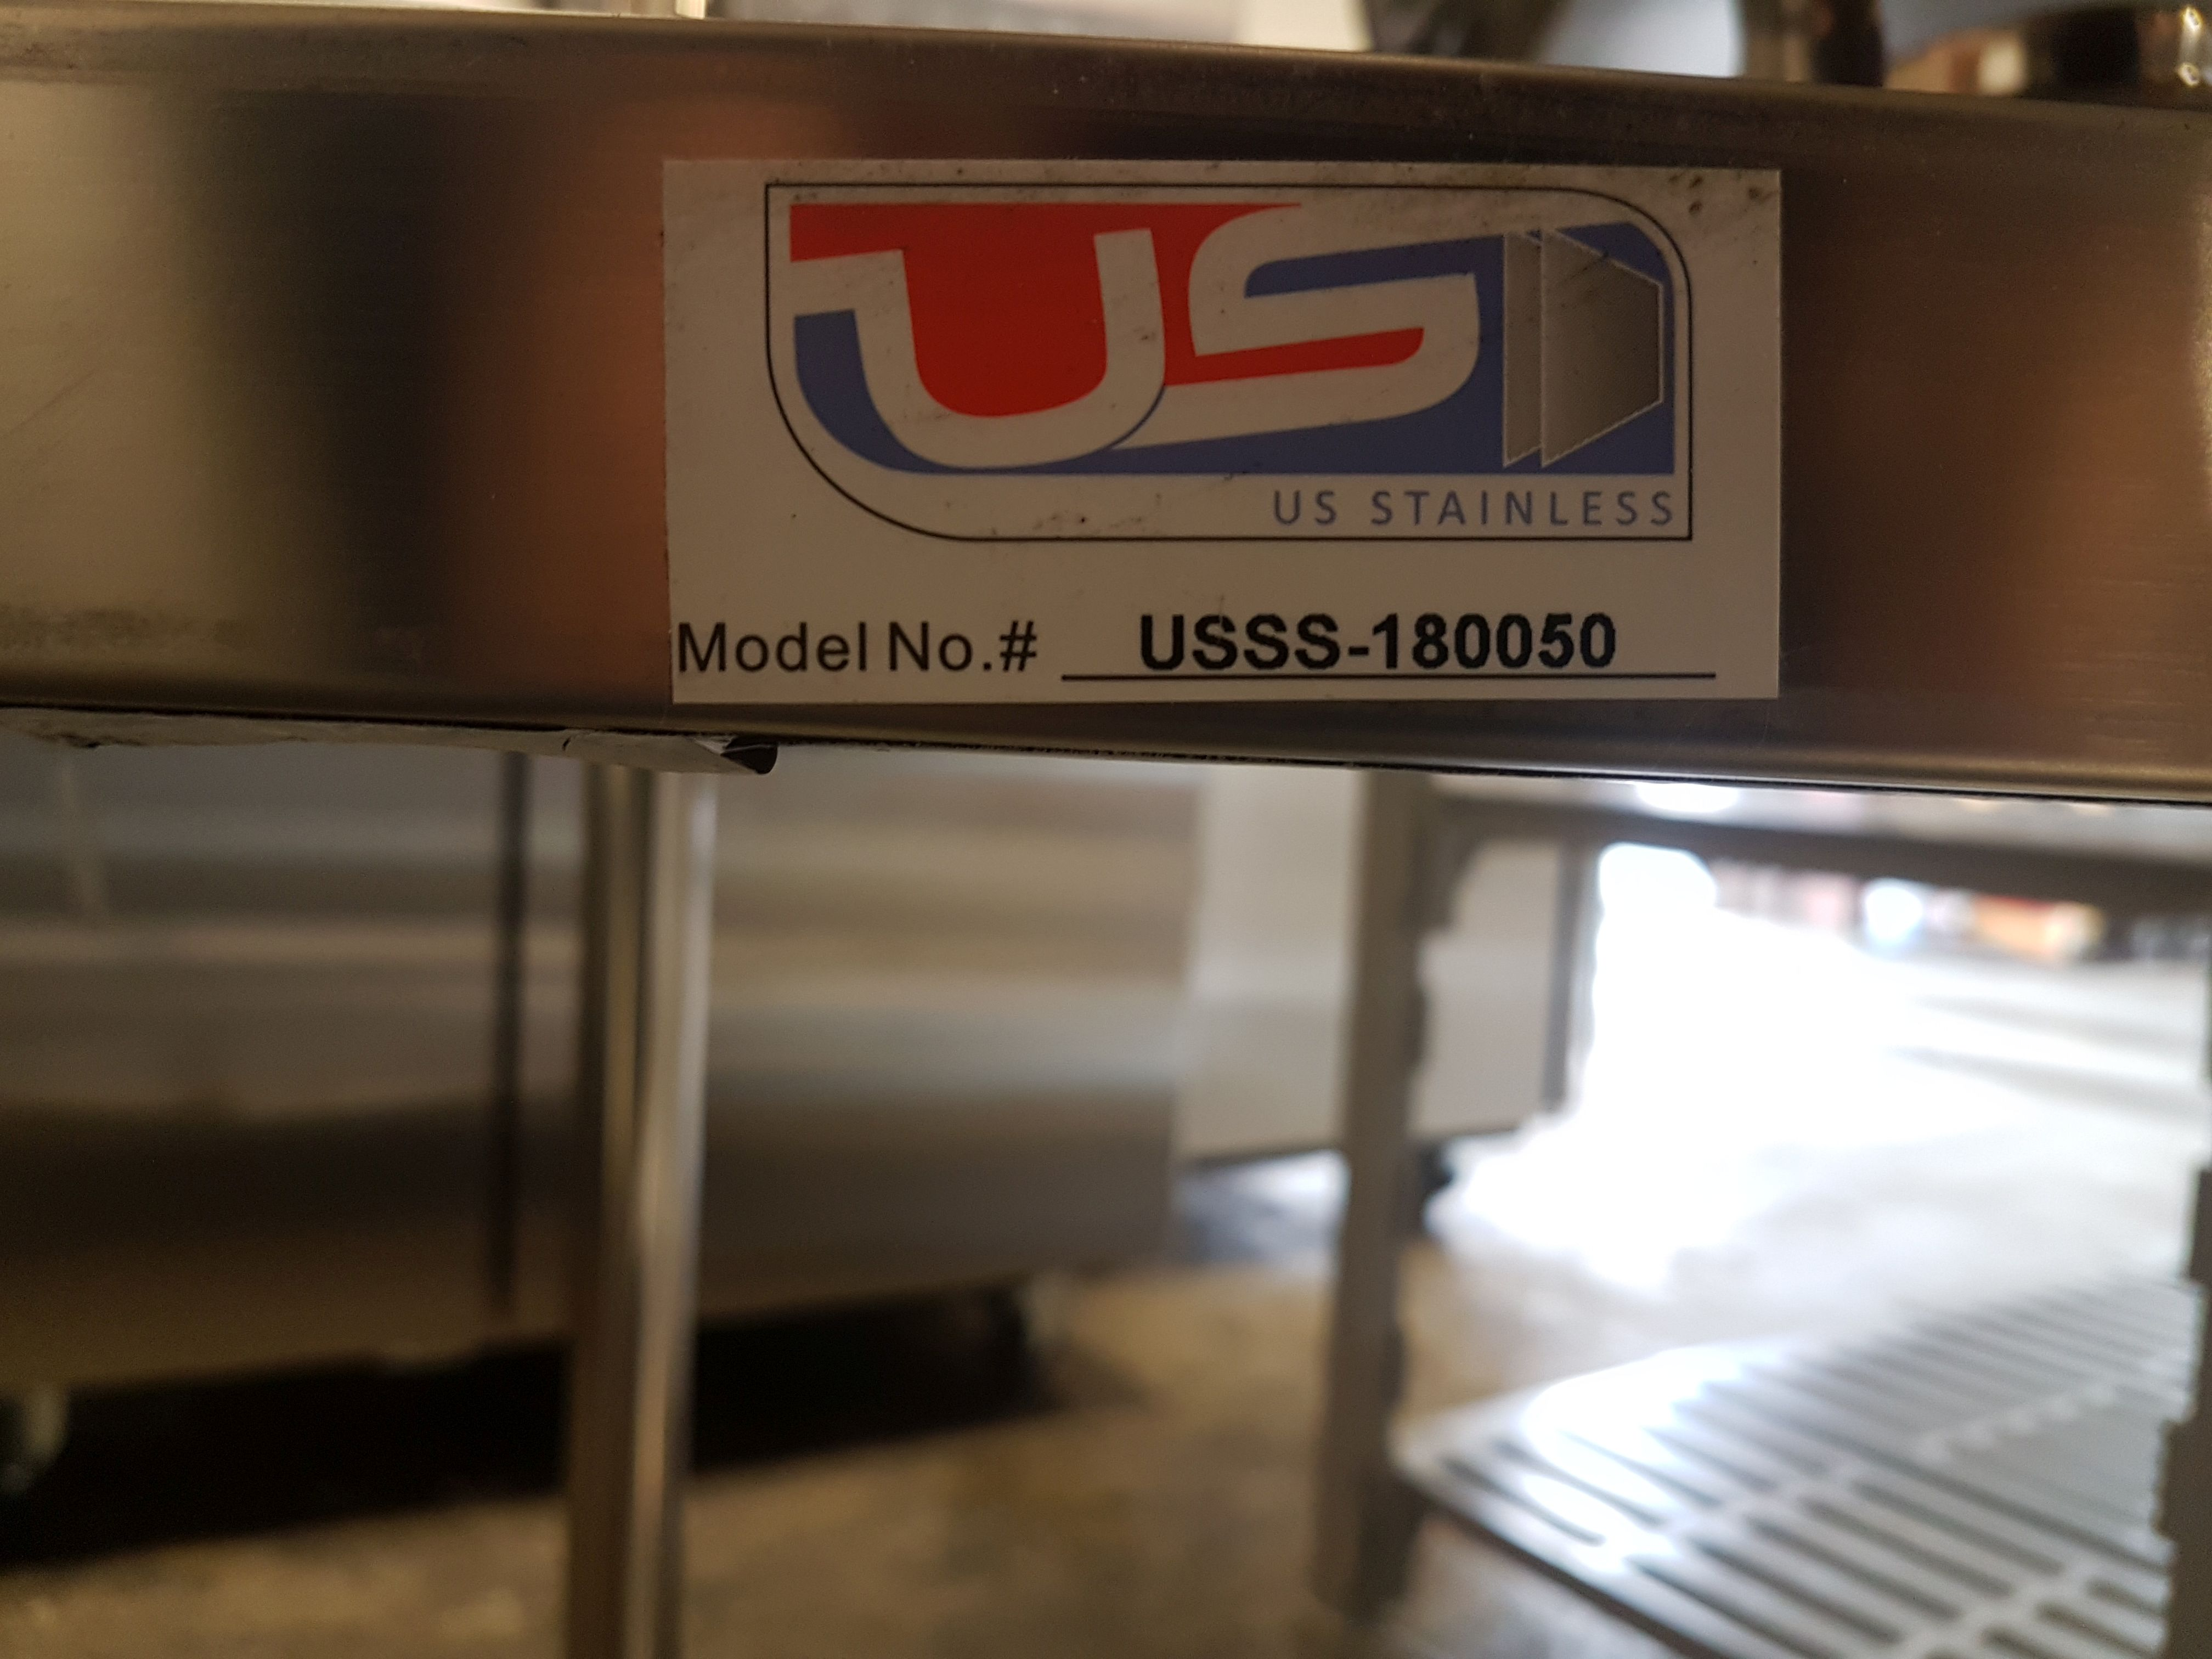 "Lot 9 - 19.5"" x 70.5"" x 72"" All Stainless 4 Shelf Unit - USSS-180050"